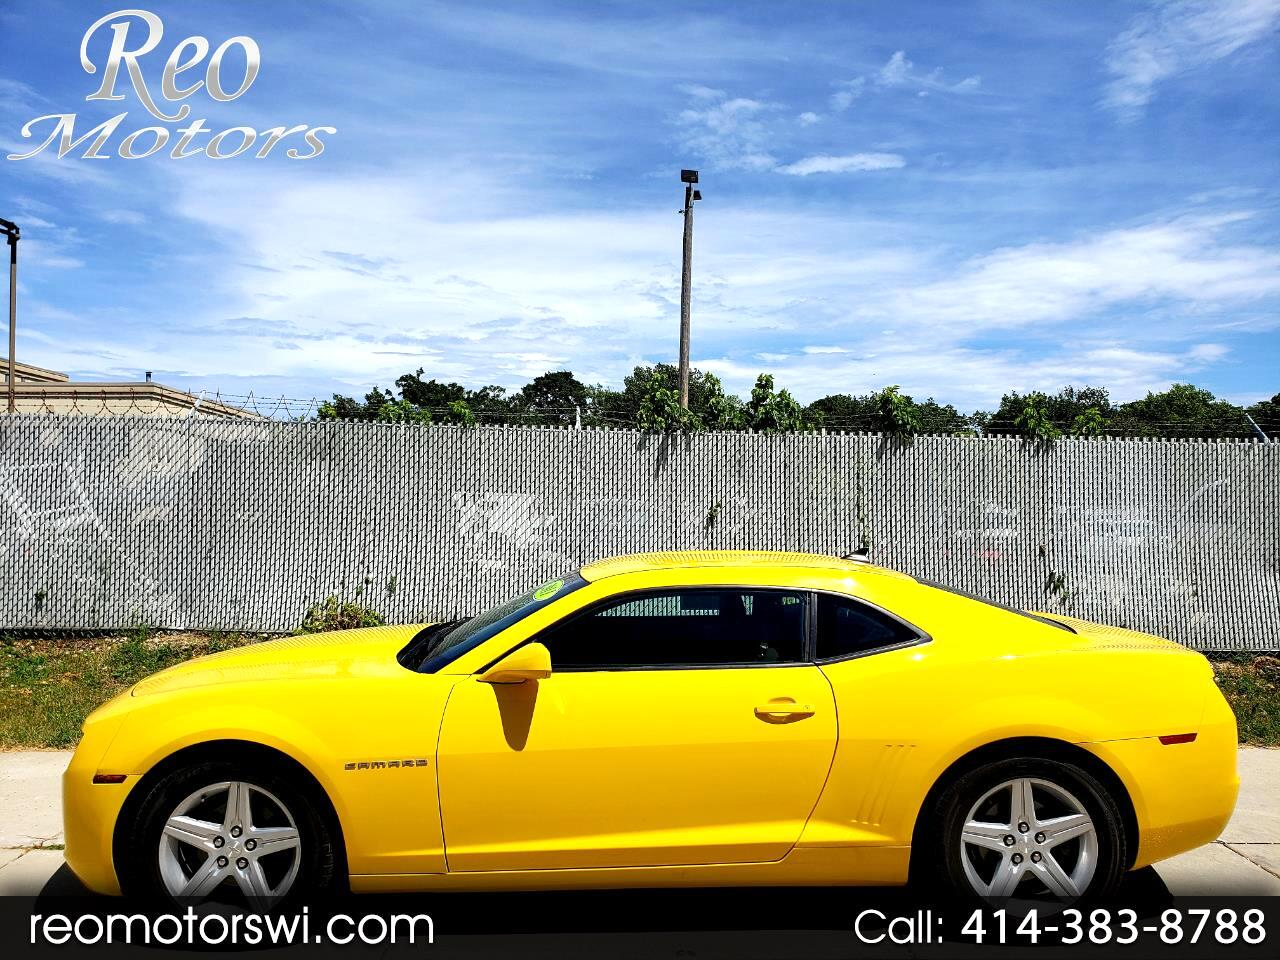 Used Cars for Sale Reo Motors